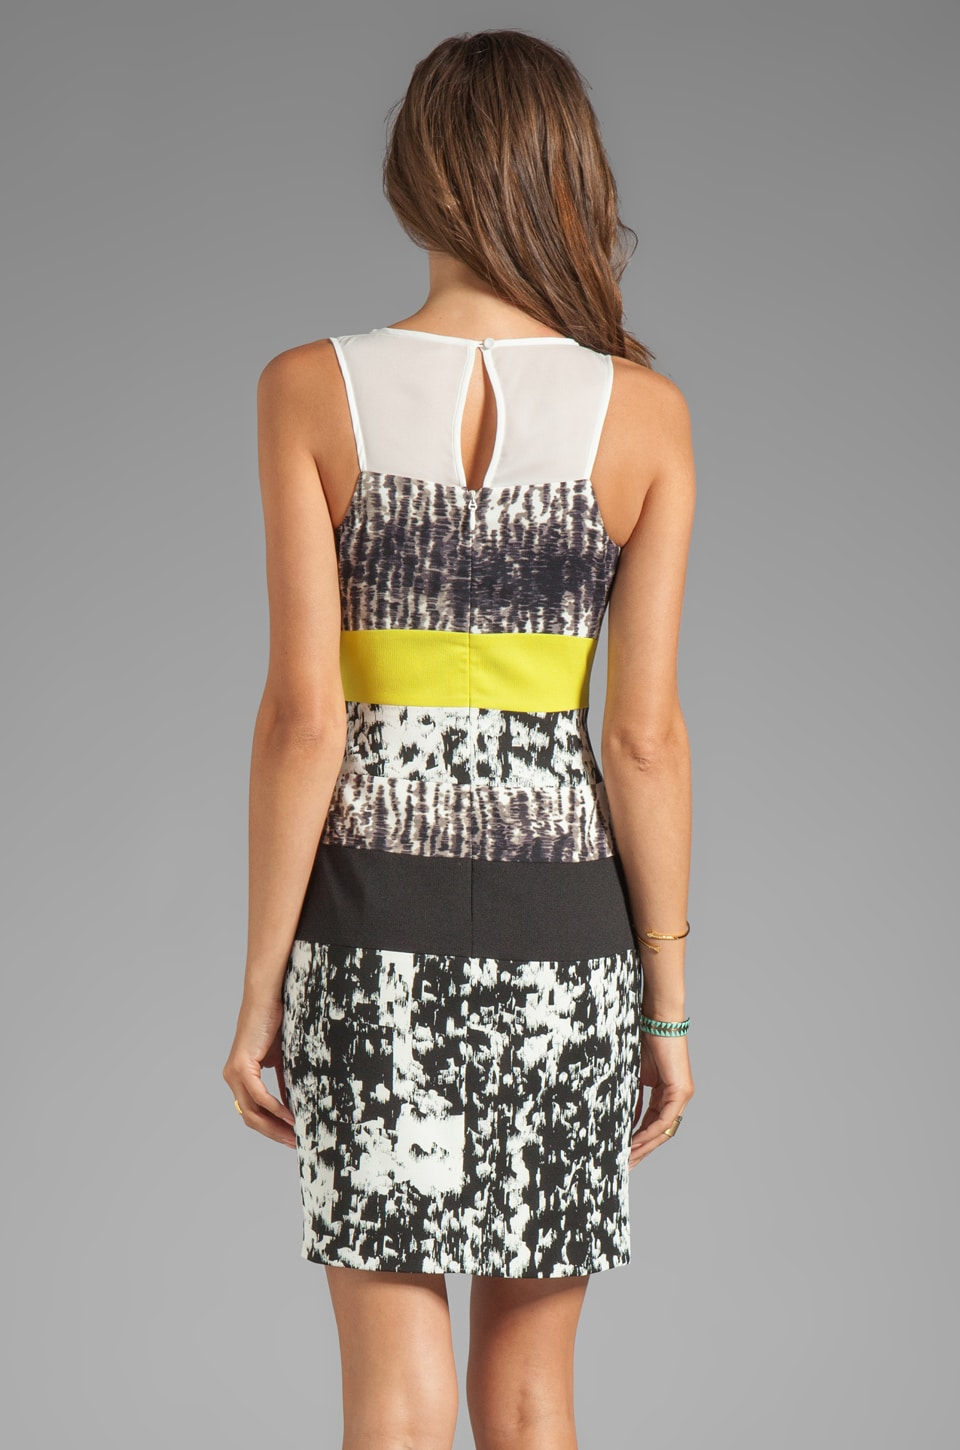 BCBGMAXAZRIA Print Combo Tank Dress in White Combo